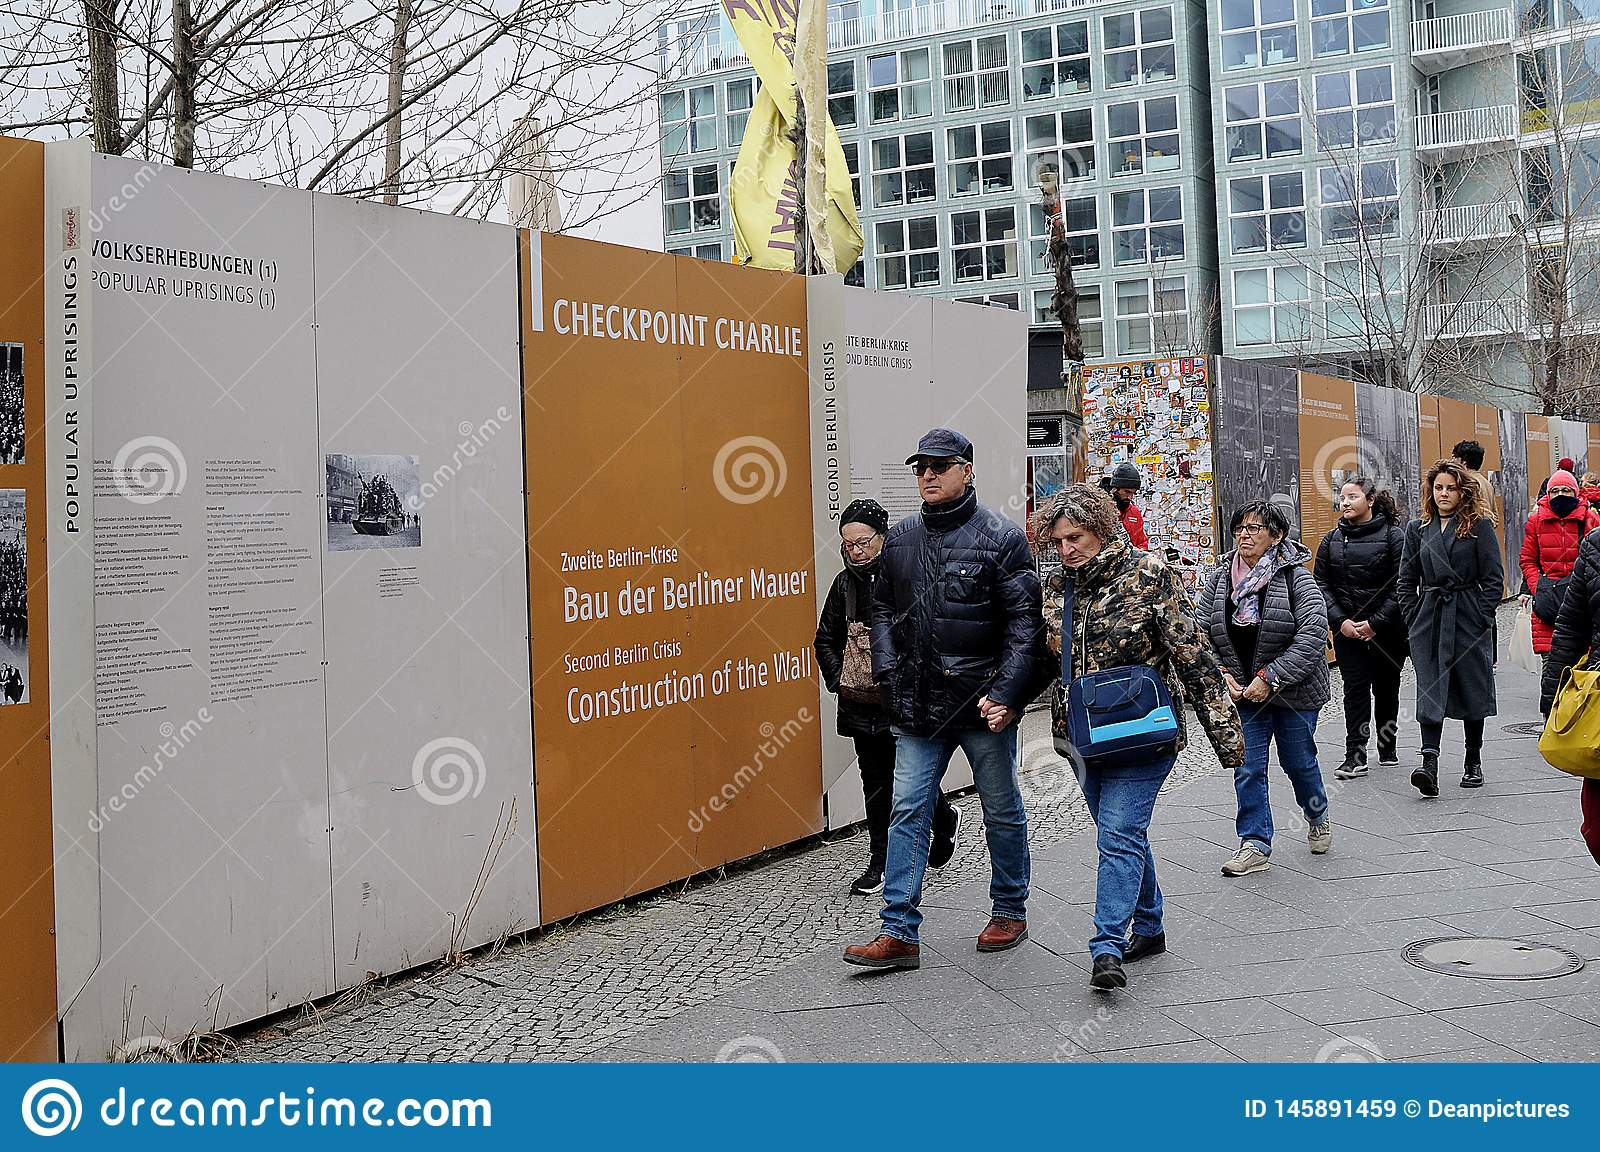 VISITORS AND LIFE AT CHECK POINT CHARLIES BERLIN. Check point charlie/berlain/ 05.March 2019. _Images are from Check point charlie, berlin 1989-2019 this Berlin royalty free stock images